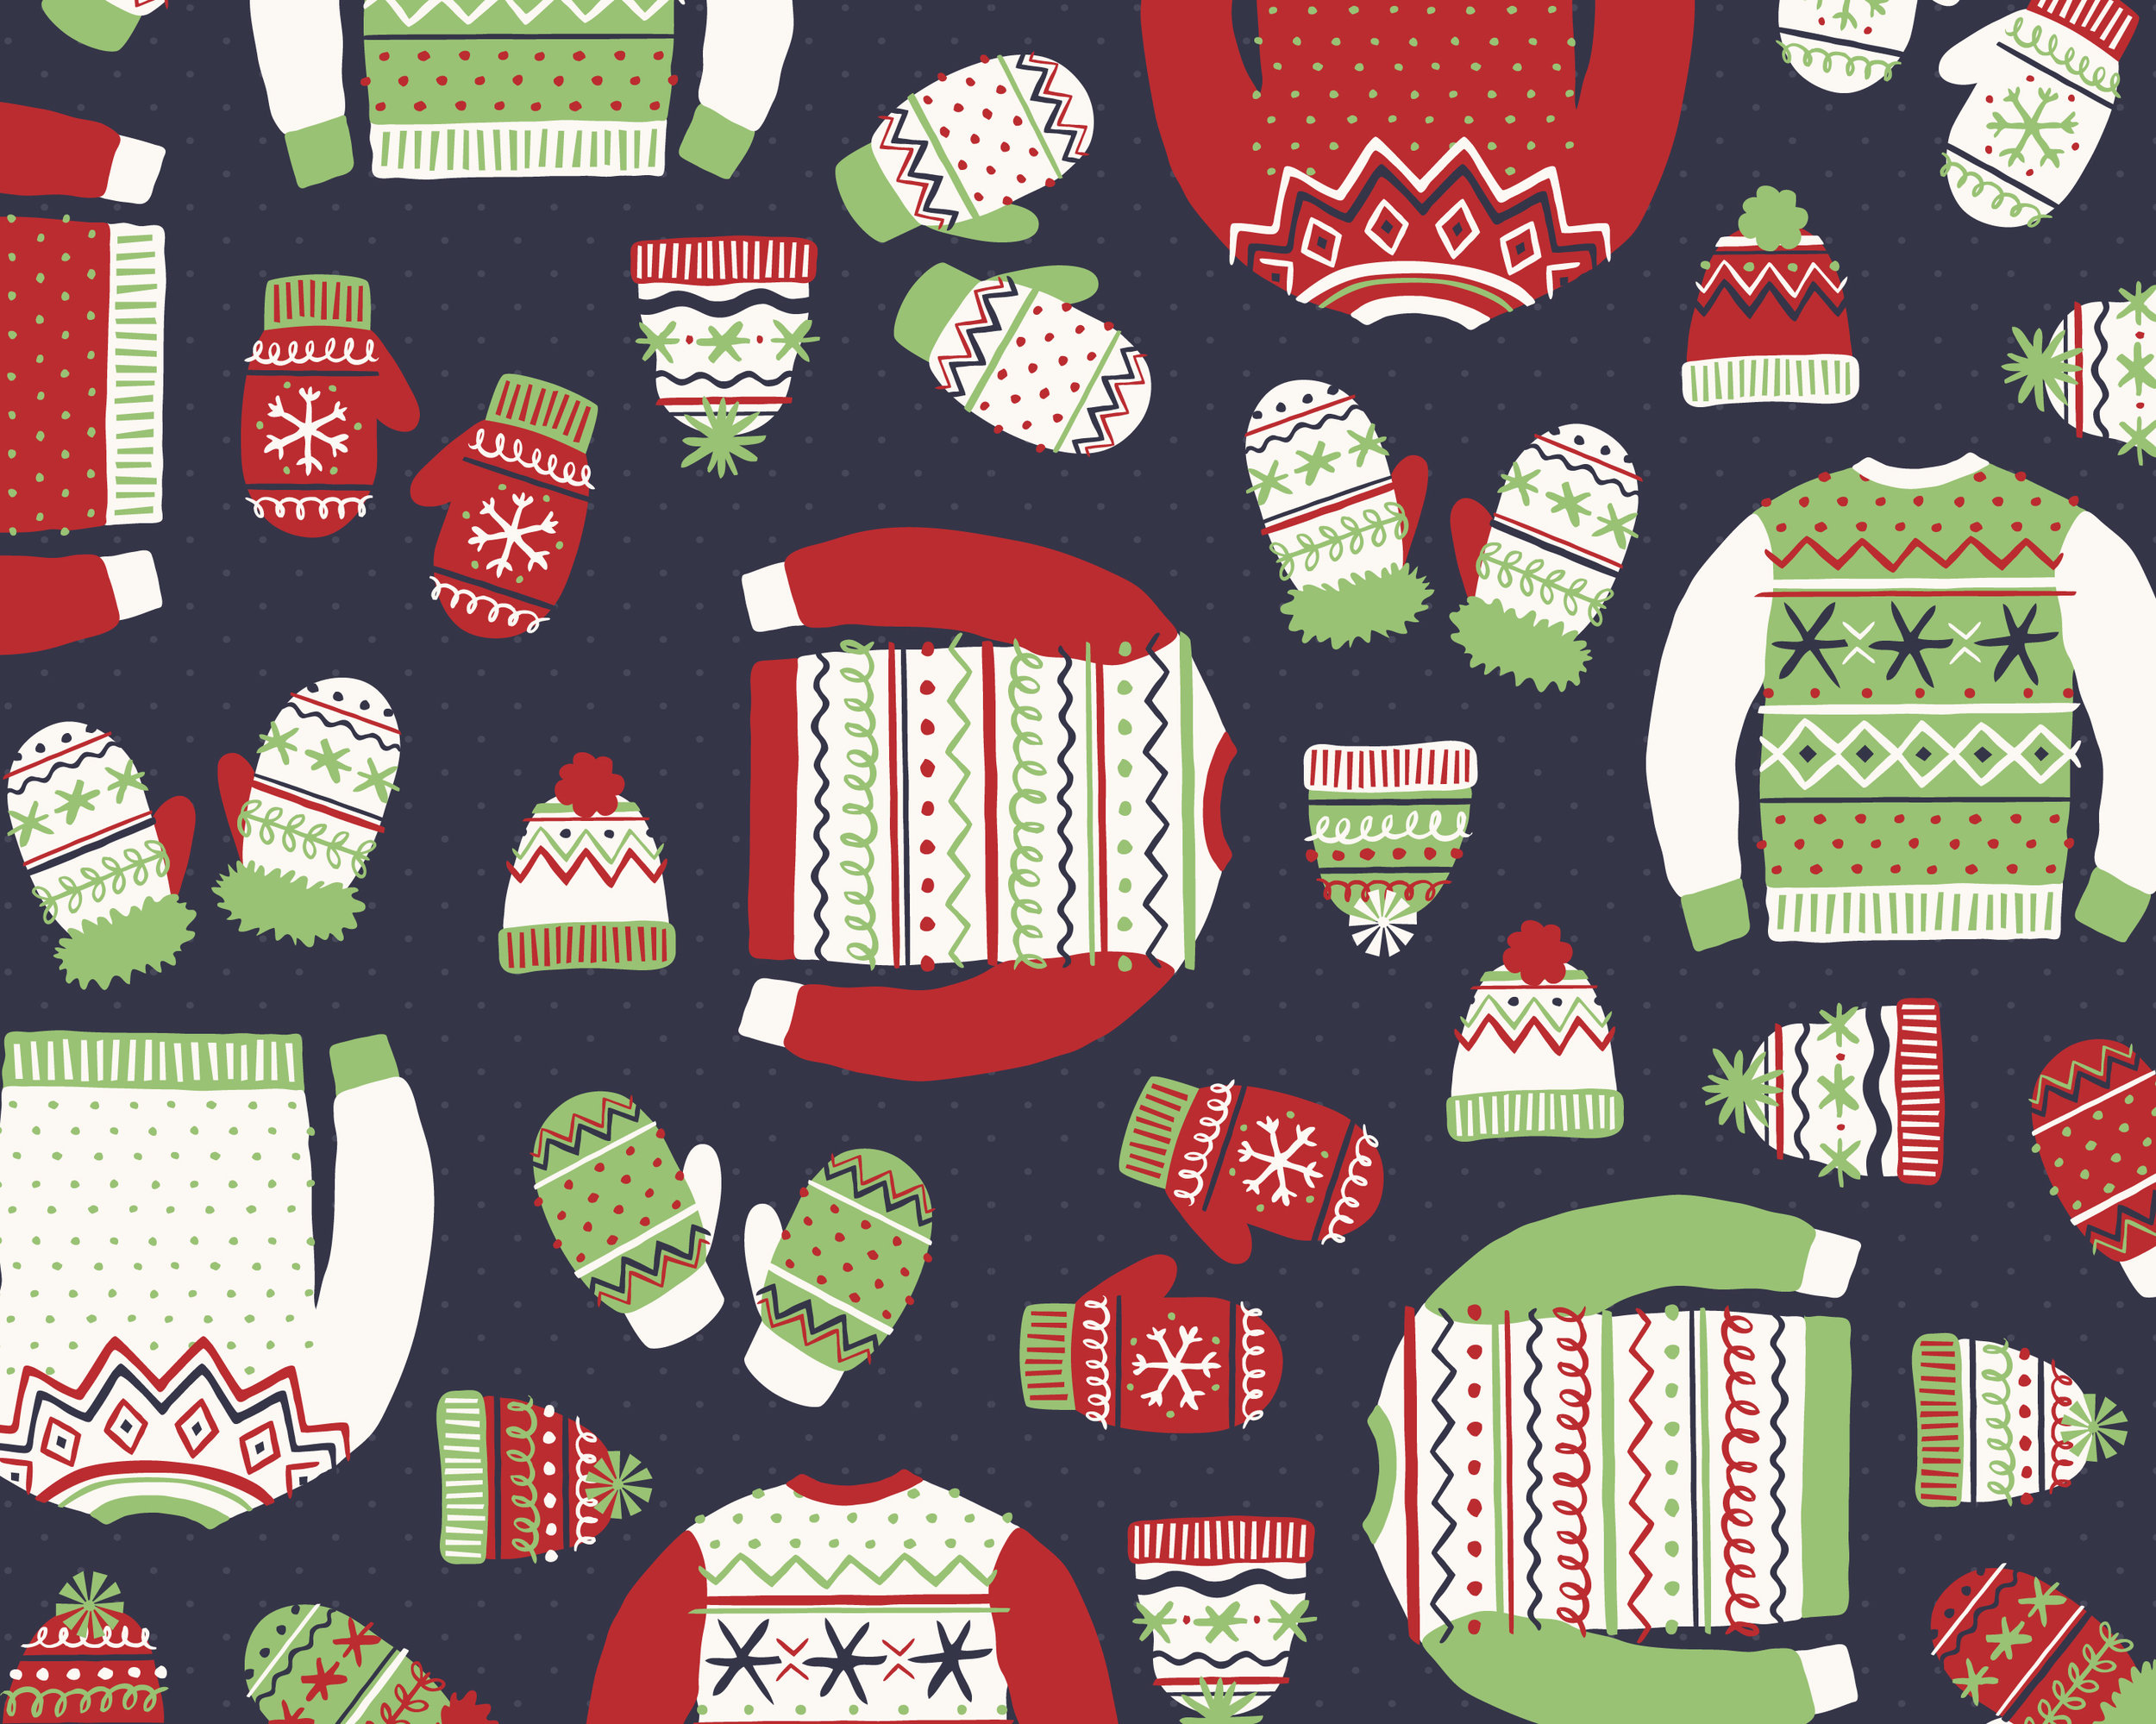 ugly sweaters-02.jpg